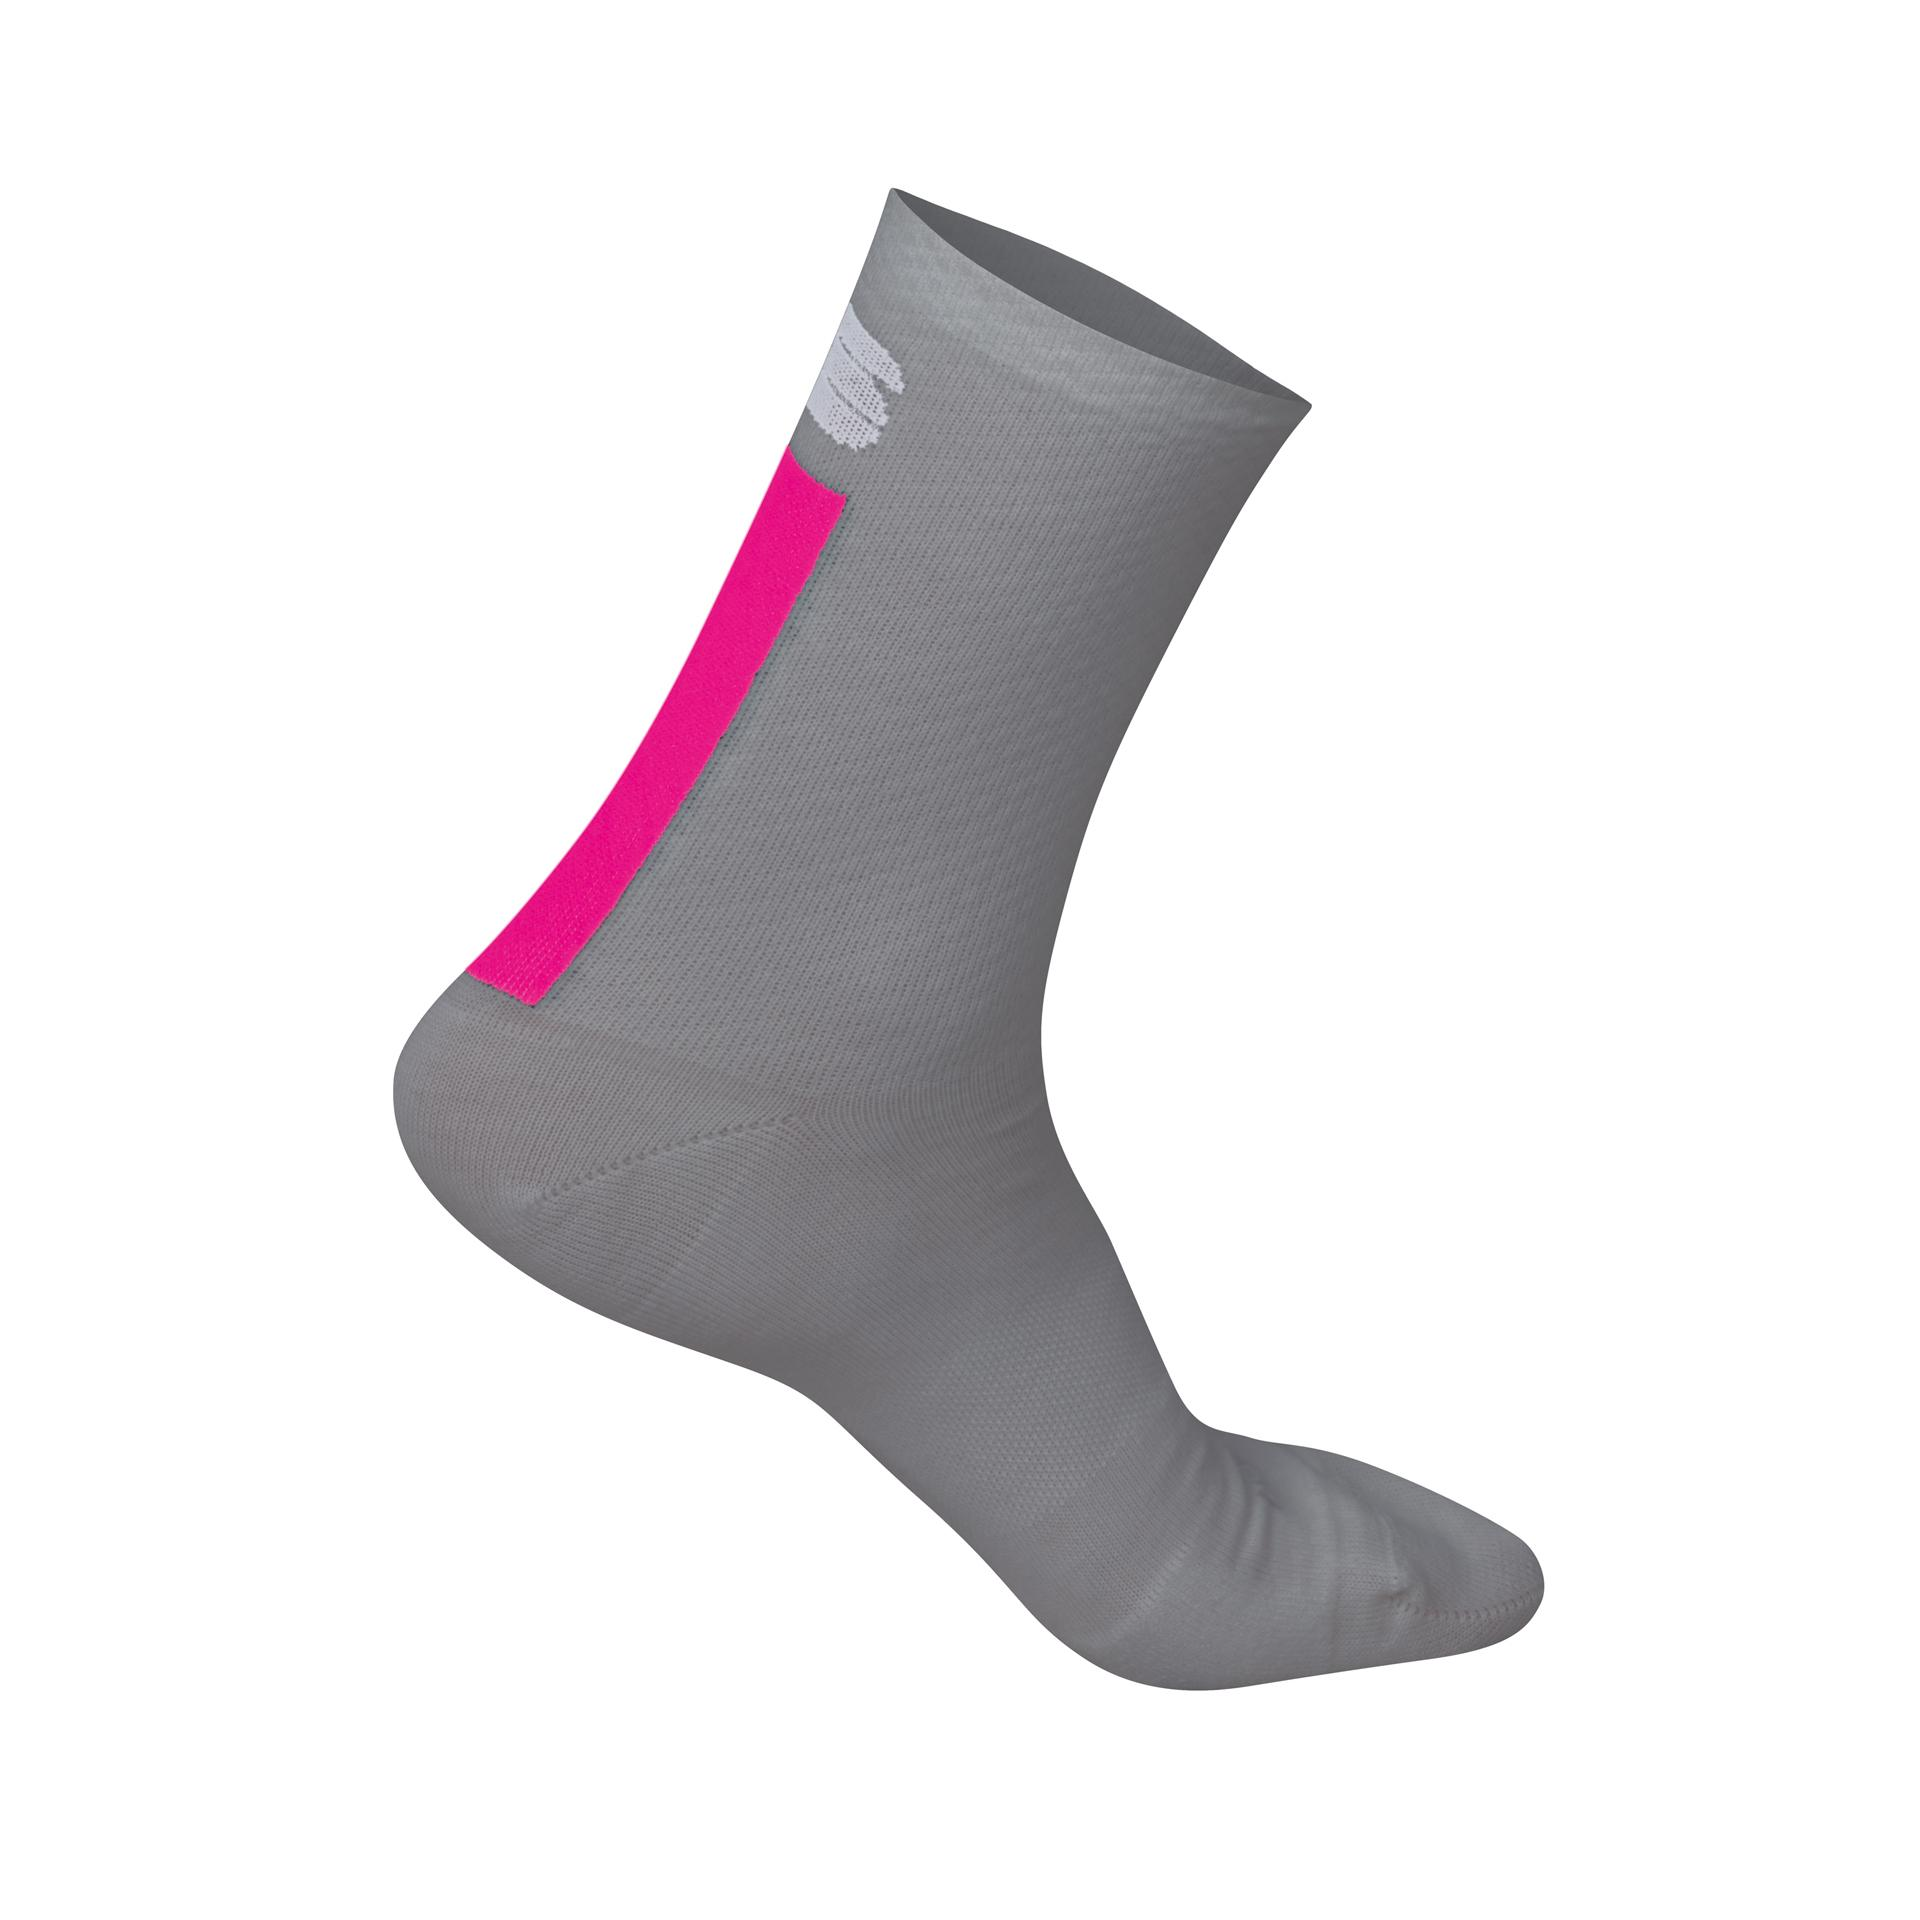 Sportful Fietssokken winter Dames Grijs Roze / Wool W 16 Sock-Alaska Grey/Bubble Gum